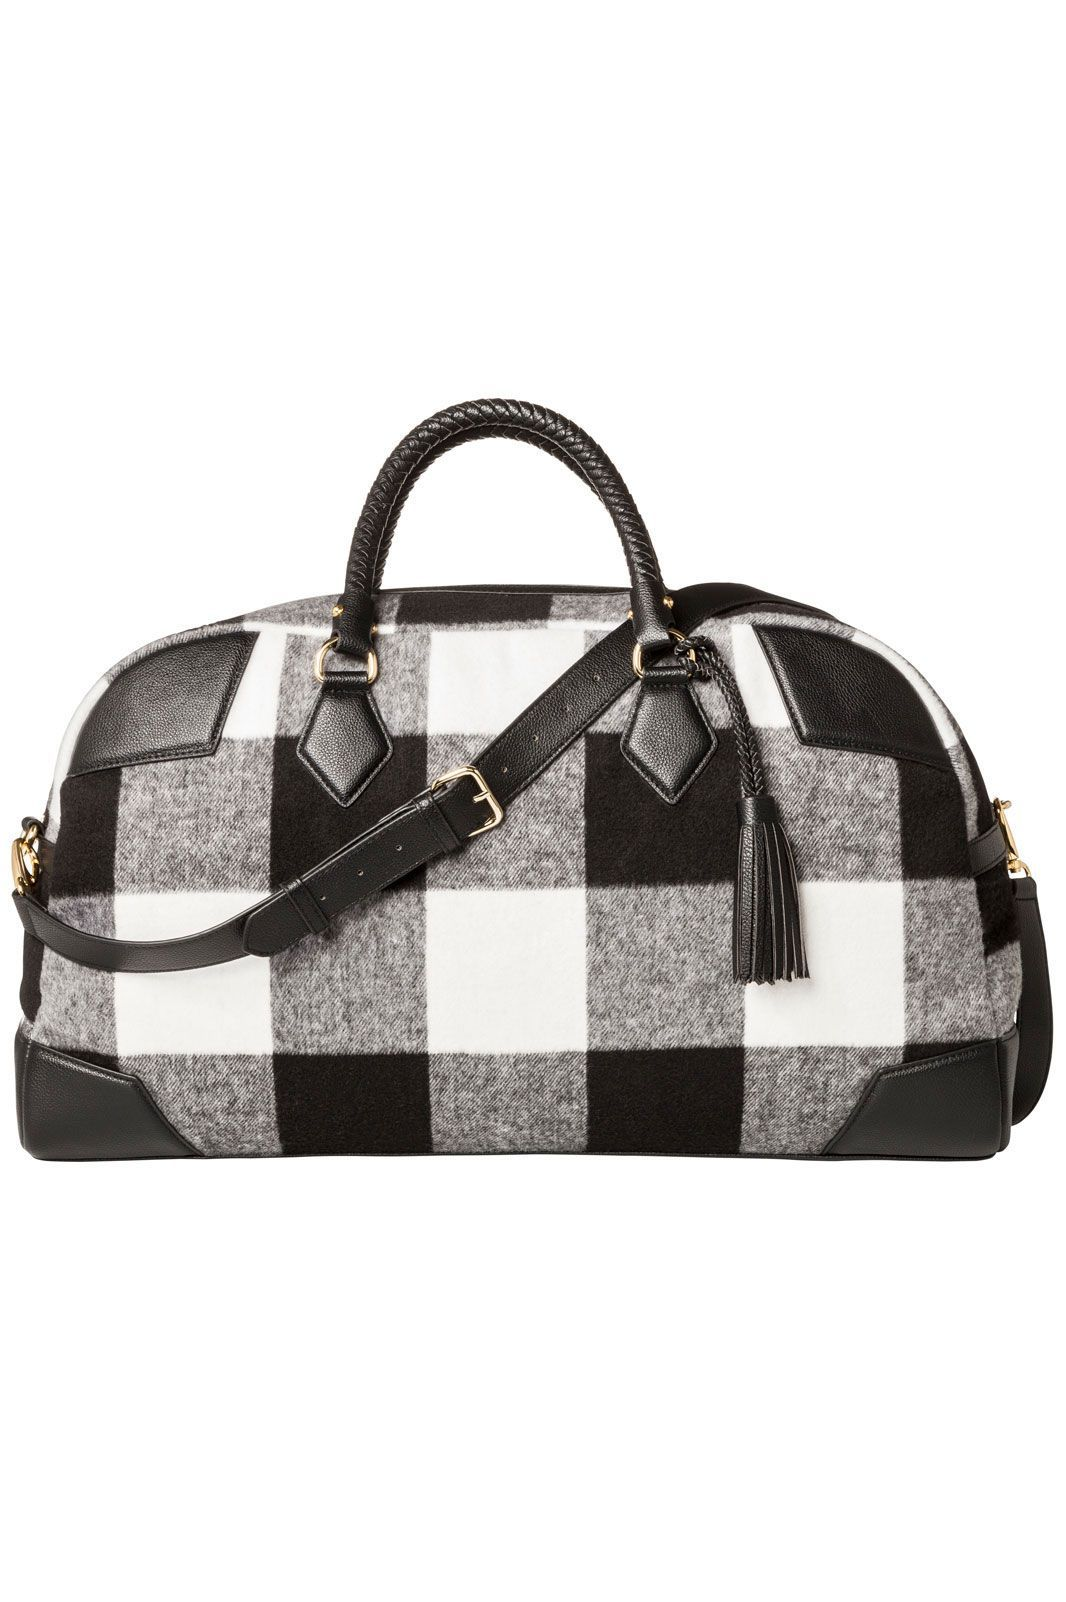 3e796f9876 Adam Lippes for Target Shearling Weekender Bag in Black White Plaid